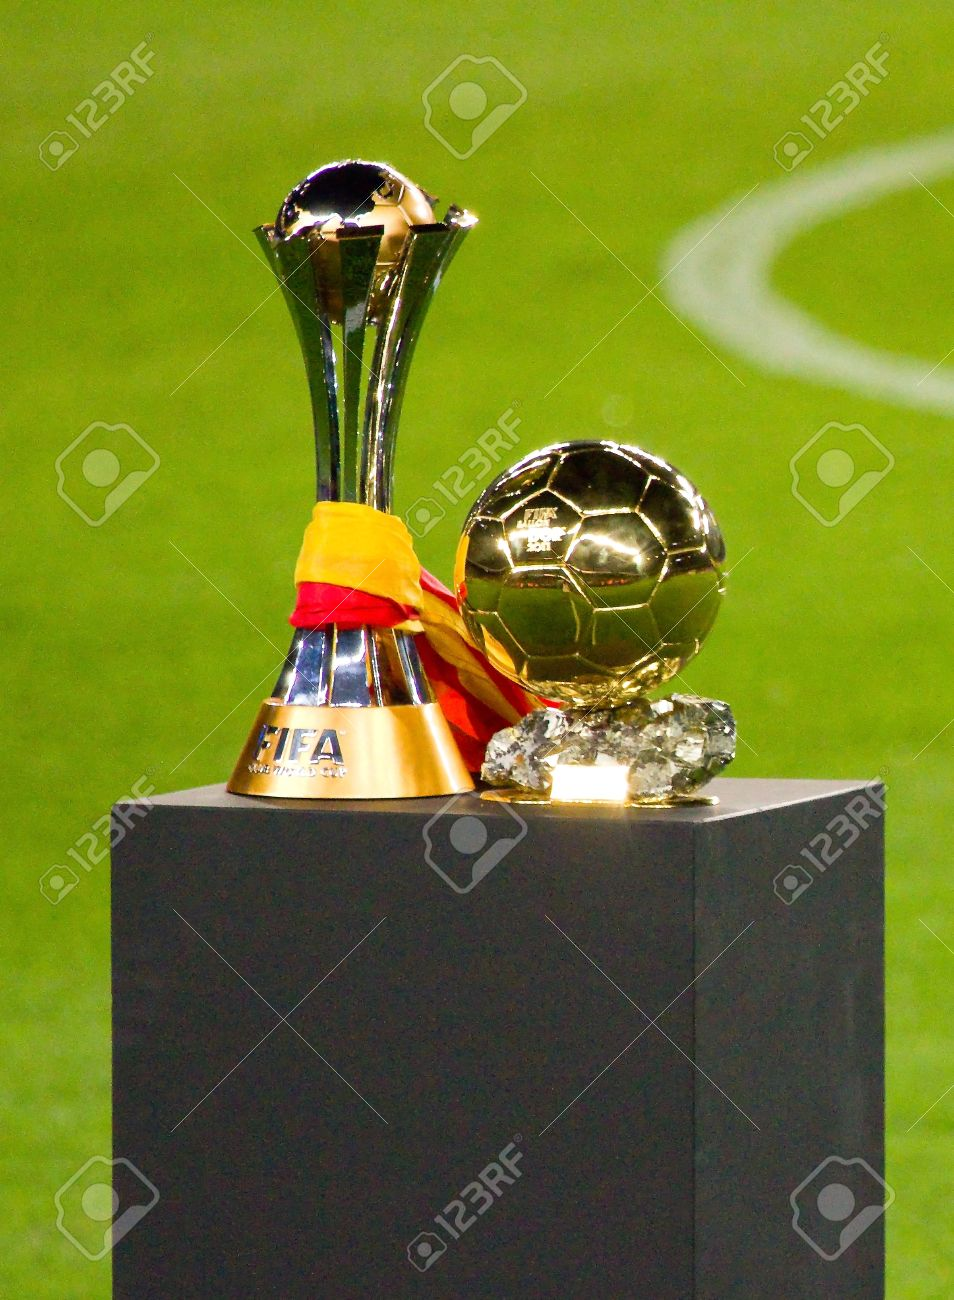 BARCELONA - JANUARY 15, 2012: FC Barcelona team offers the FIFA Club World Cup (L) and FIFA World Player Gold Ball Trophy to supporters, in Camp Nou stadium. Stock Photo - 12058610